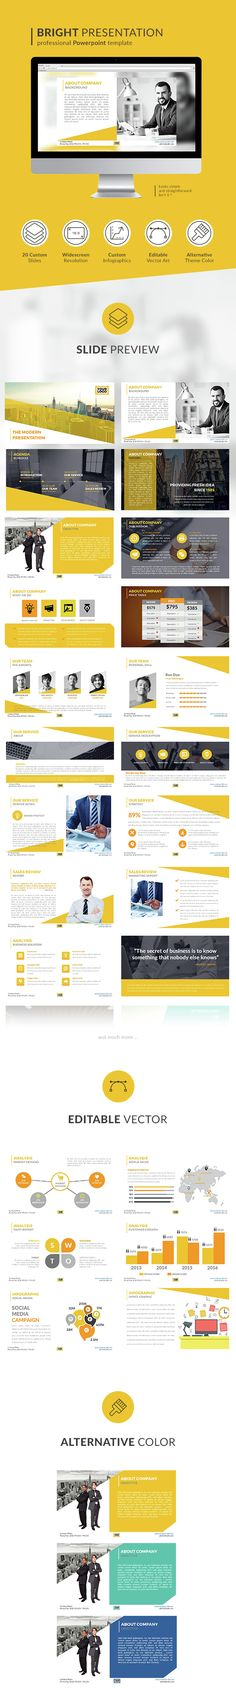 Modern Bright PowerPoint Presentation Template. Download here: http://graphicriver.net/item/modern-bright-presentation/14831257?ref=ksioks